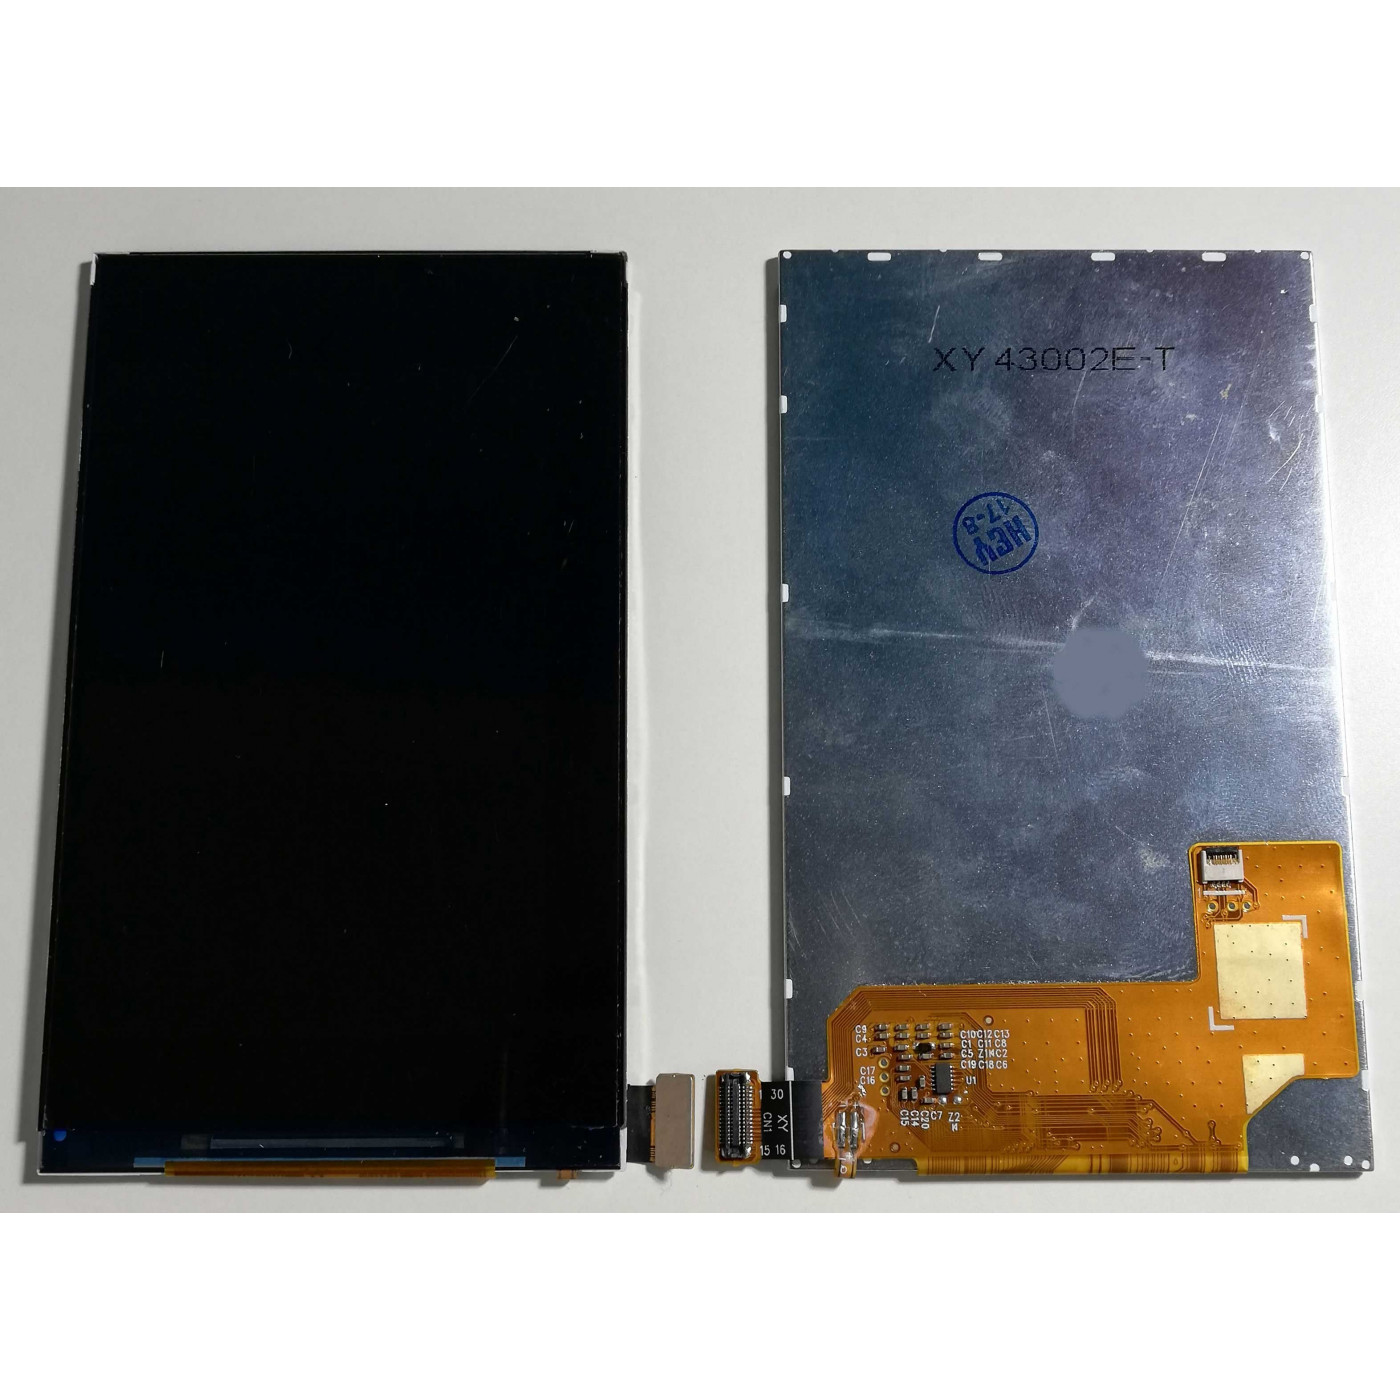 LCD DISPLAY Per Samsung Galaxy Core Plus SM G350 G3500 G3502 SCHERMO MONITOR